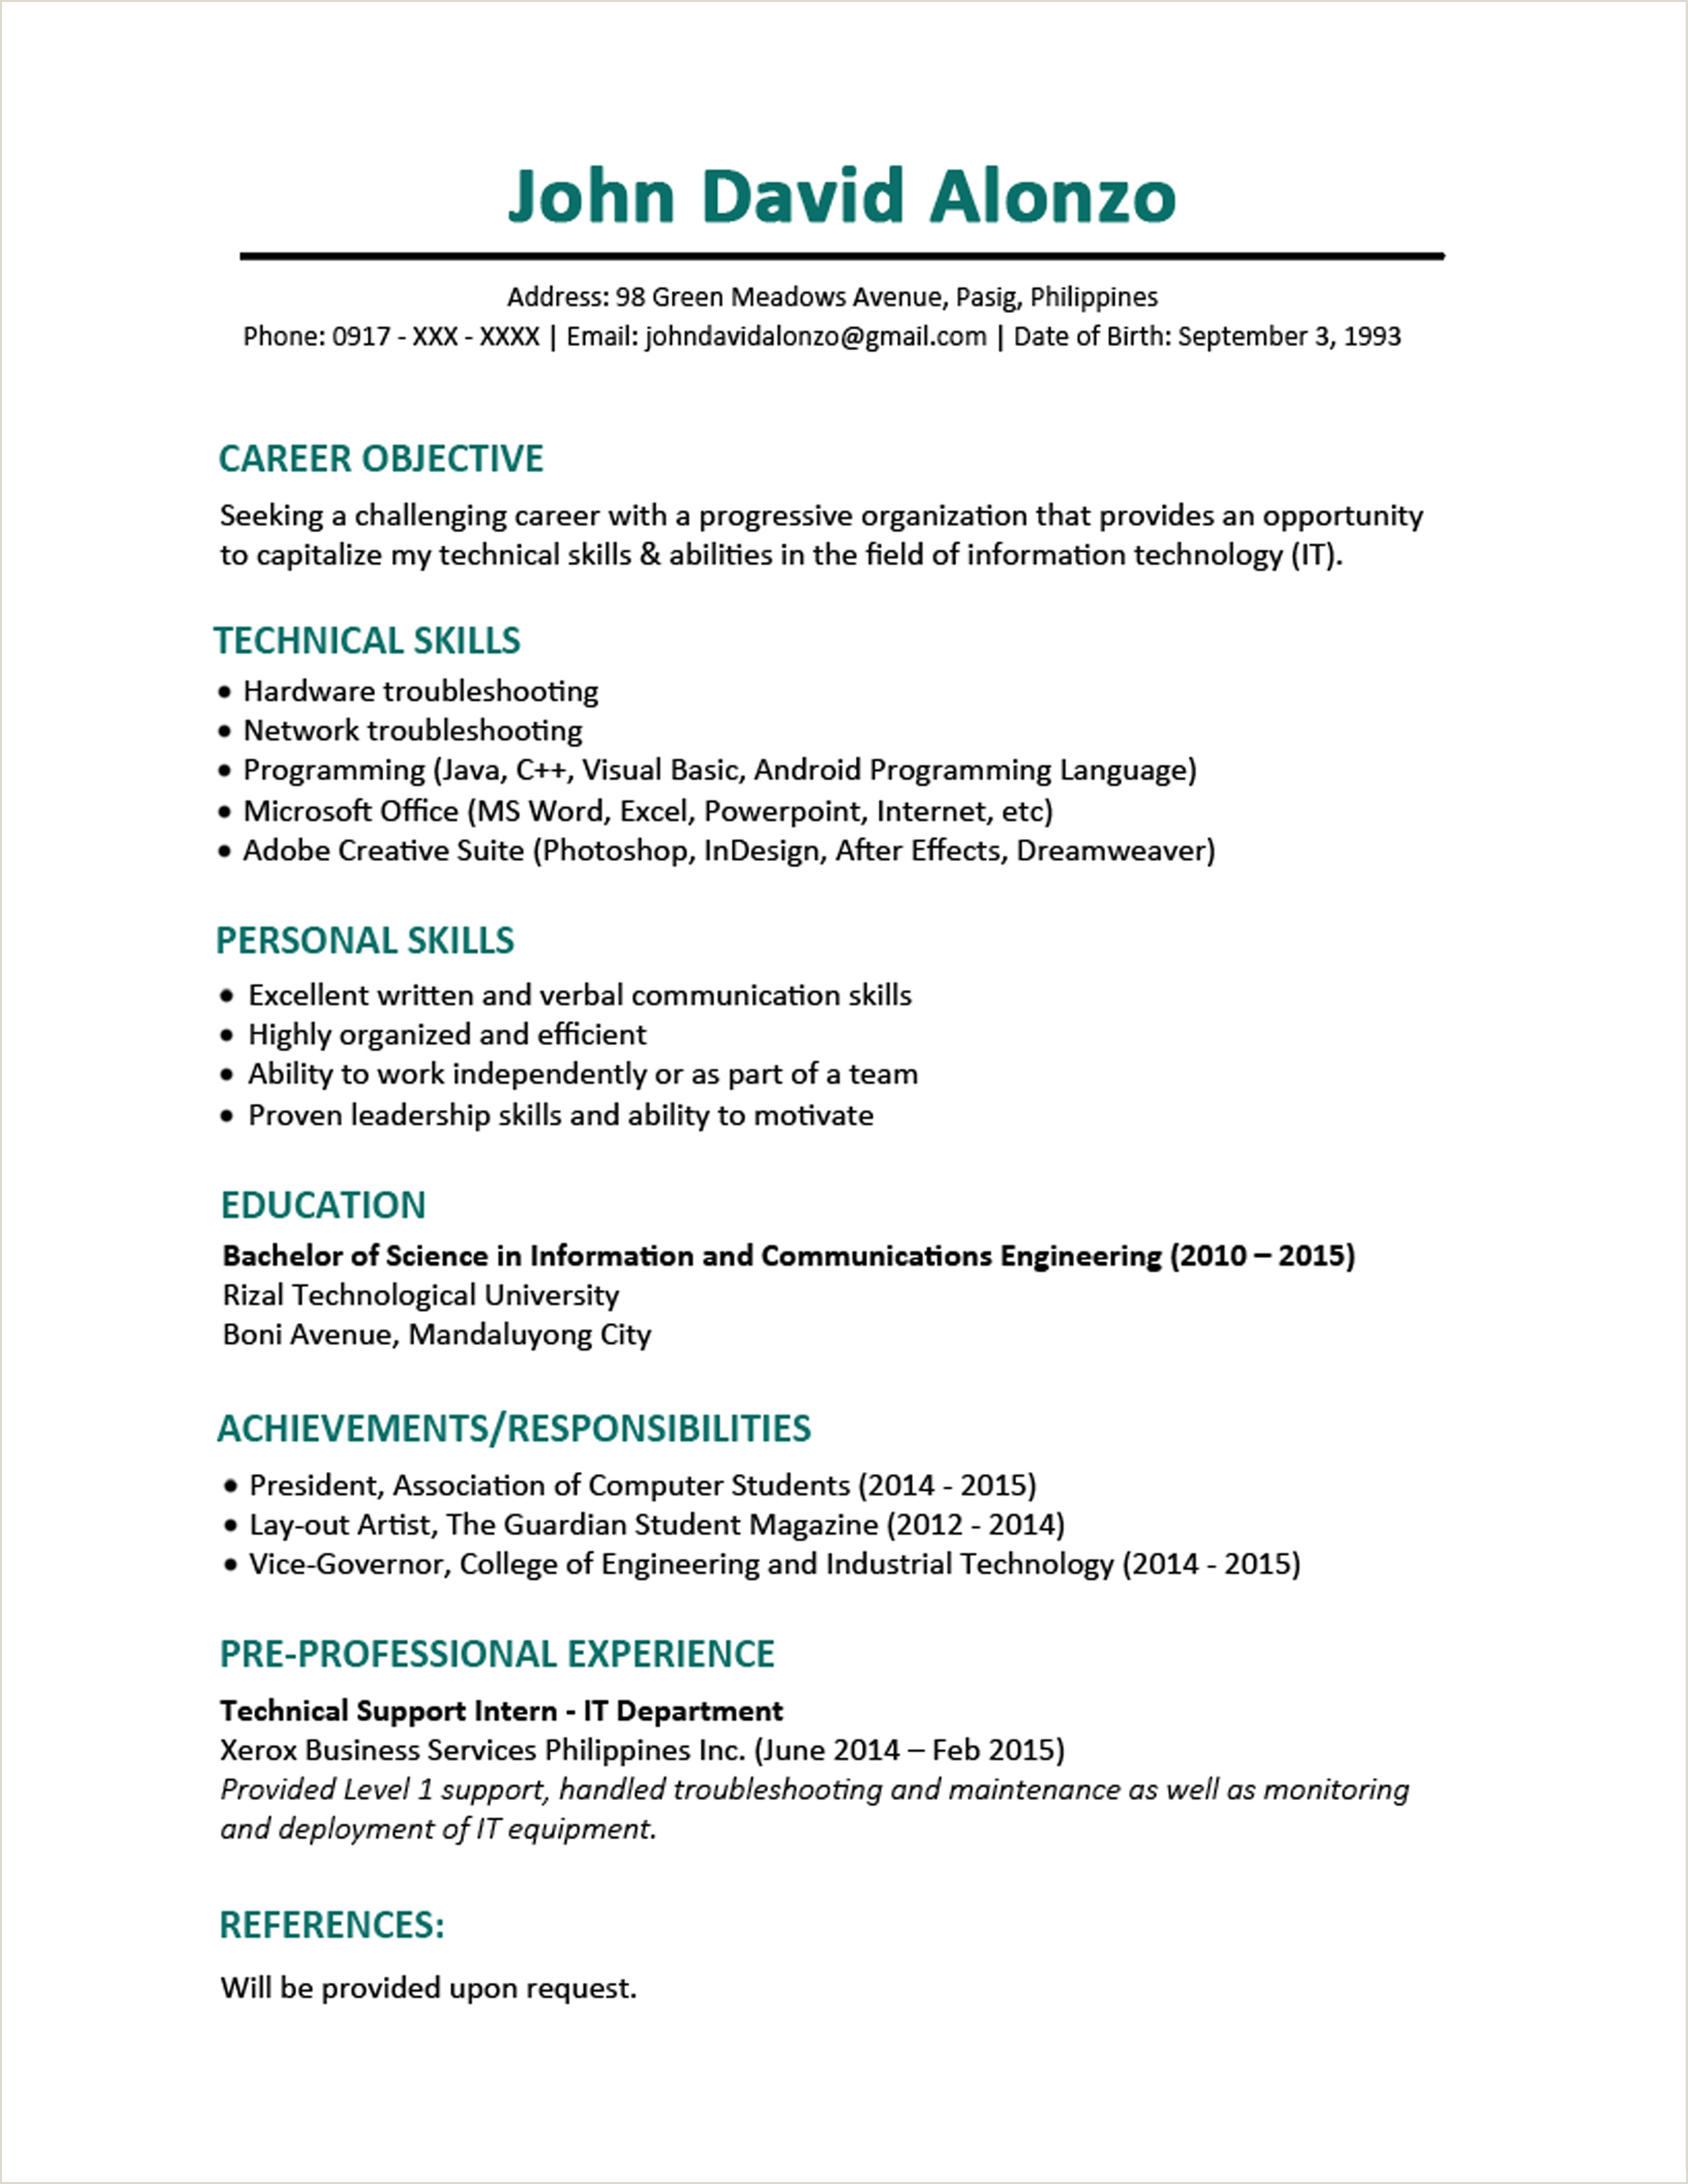 Curriculum Vitae Format Doc For Freshers 3 Page Resume Format For Freshers Resume Templates